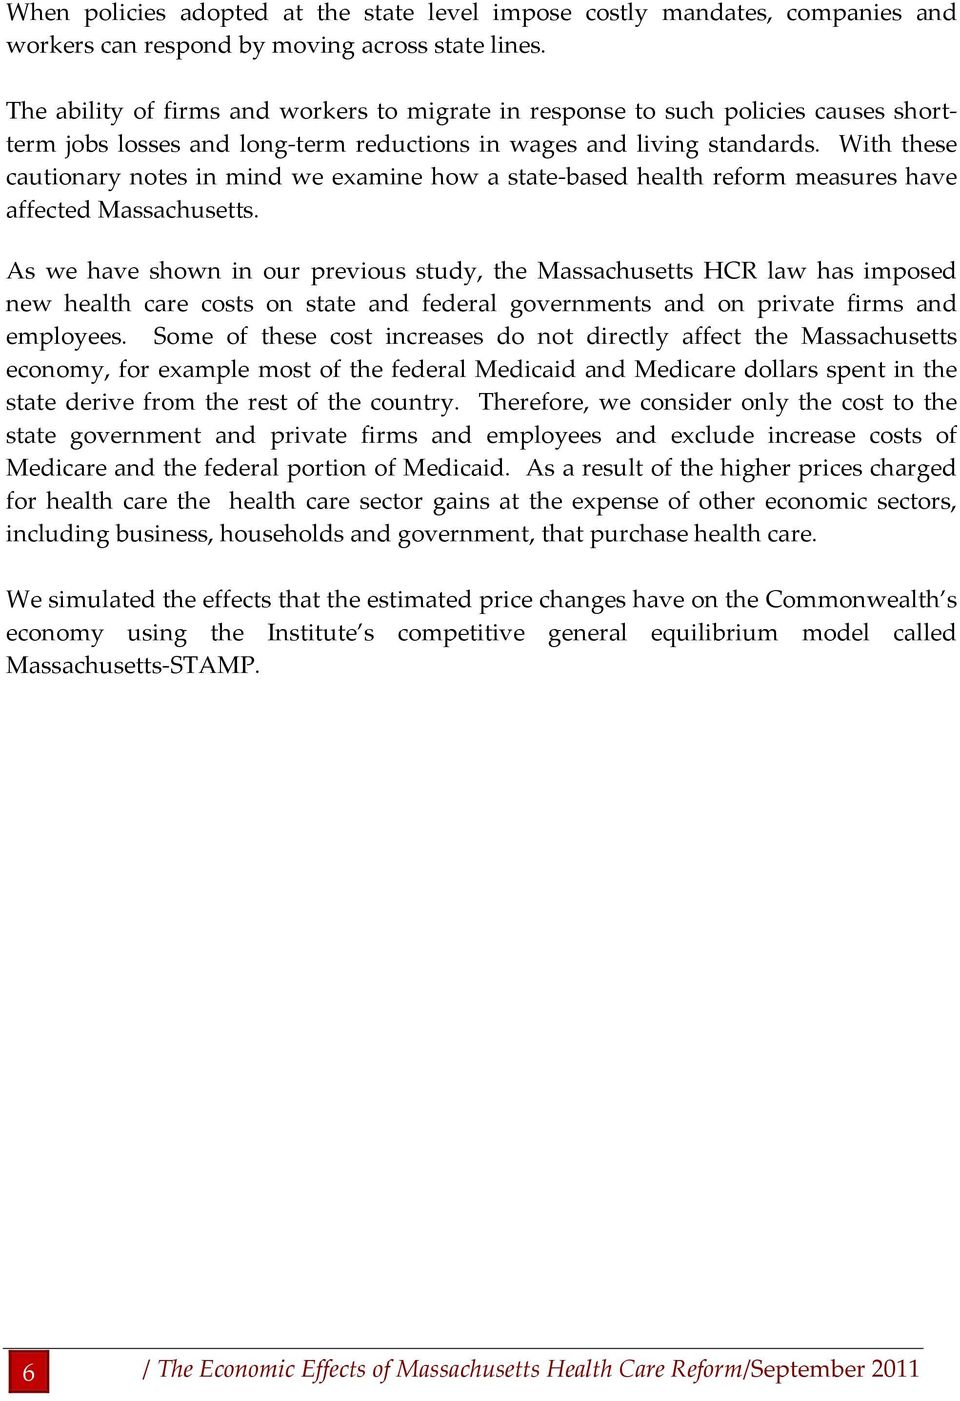 With these cautionary notes in mind we examine how a state based health reform measures have affected Massachusetts.